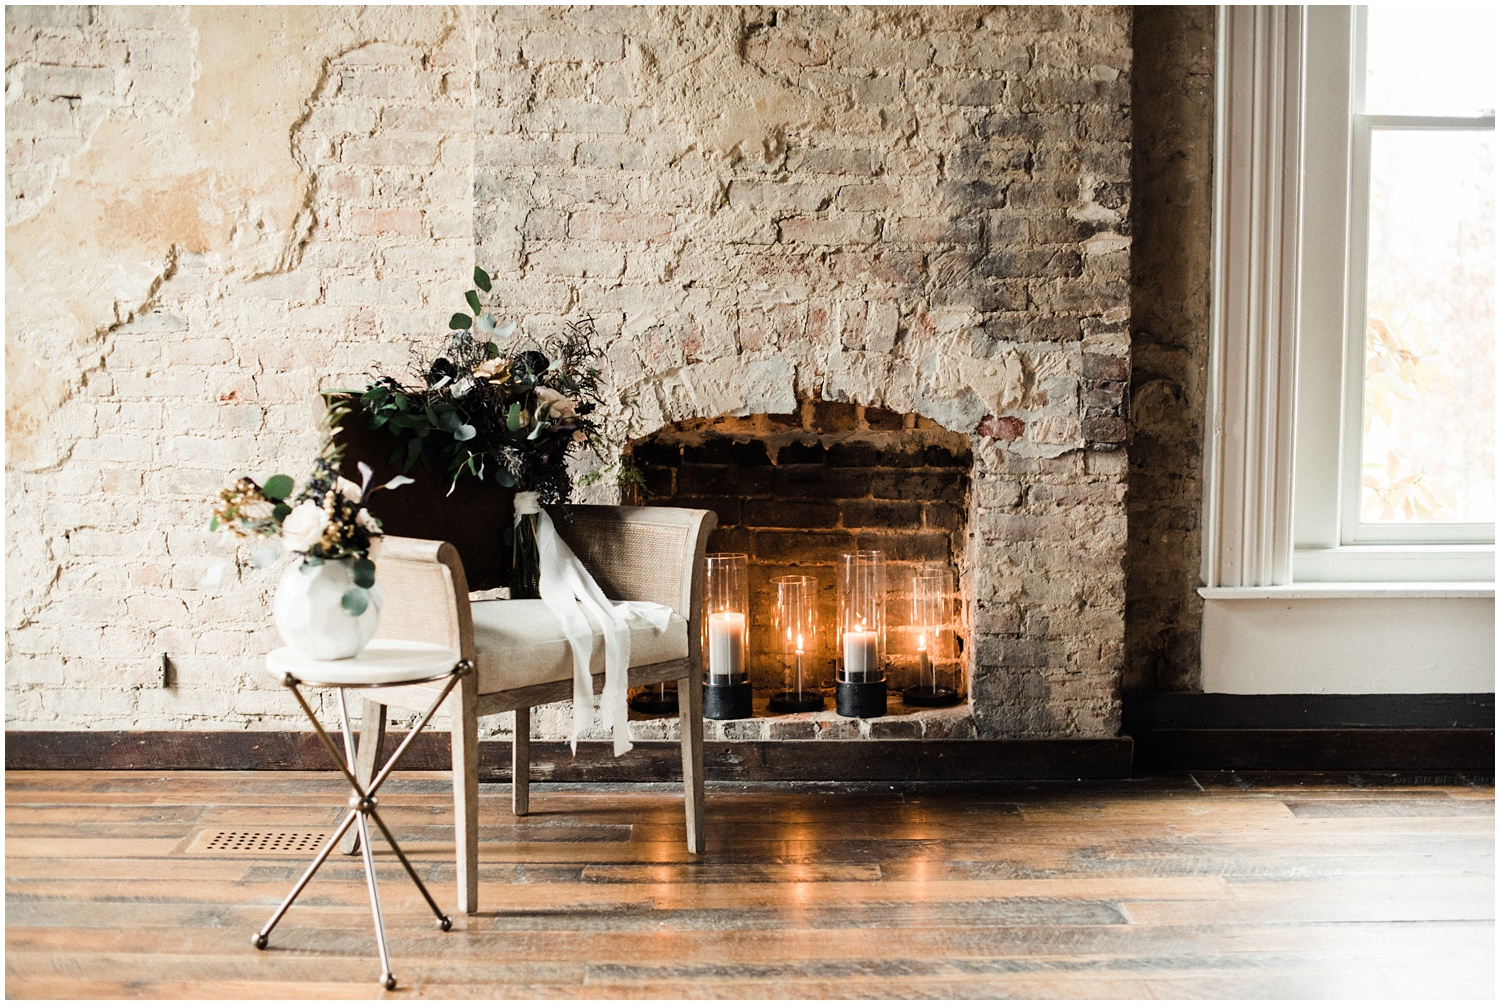 Aimee Thomas _Midwest Ohio Photographer_Modern Wedding Styled Shoot Nashville Tennessee_The Cordelle_0034.jpg